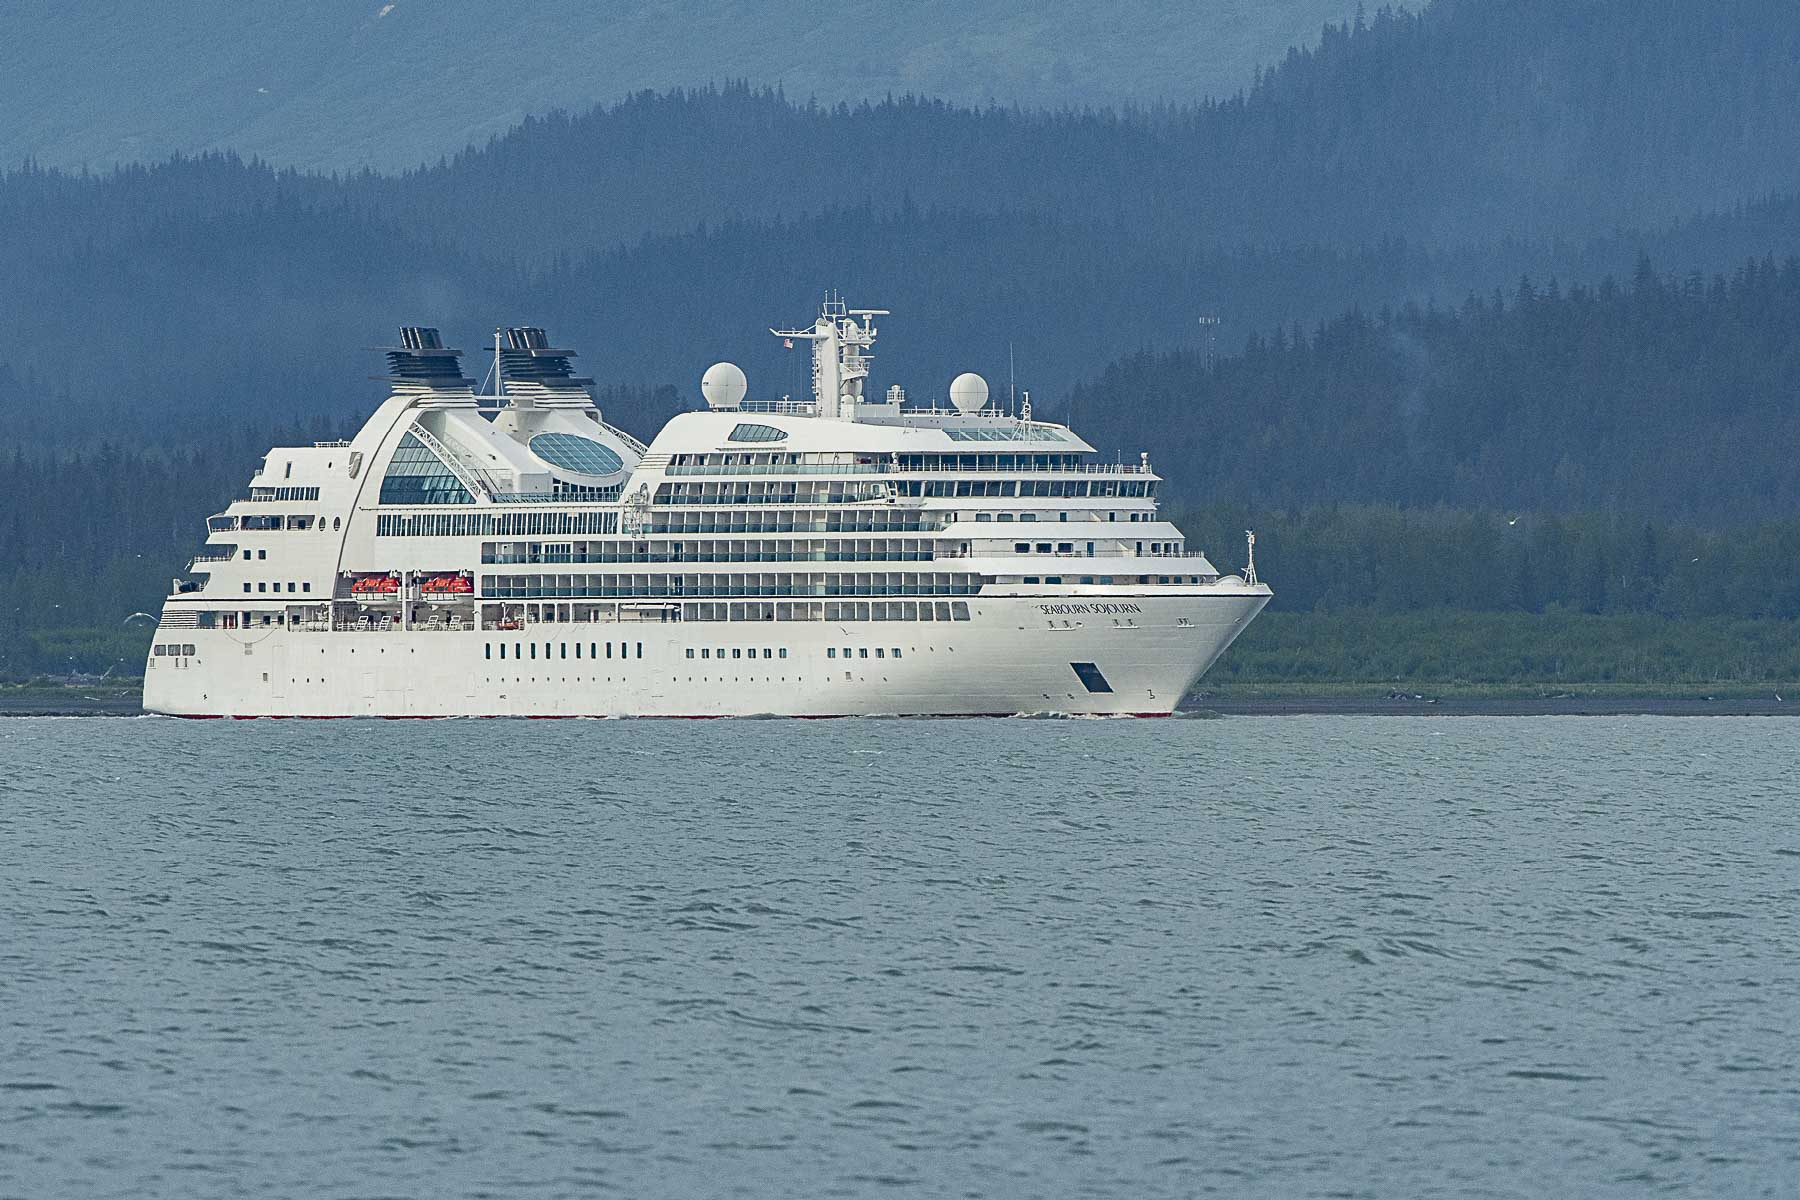 CRUISE SHIP (1 of 1)